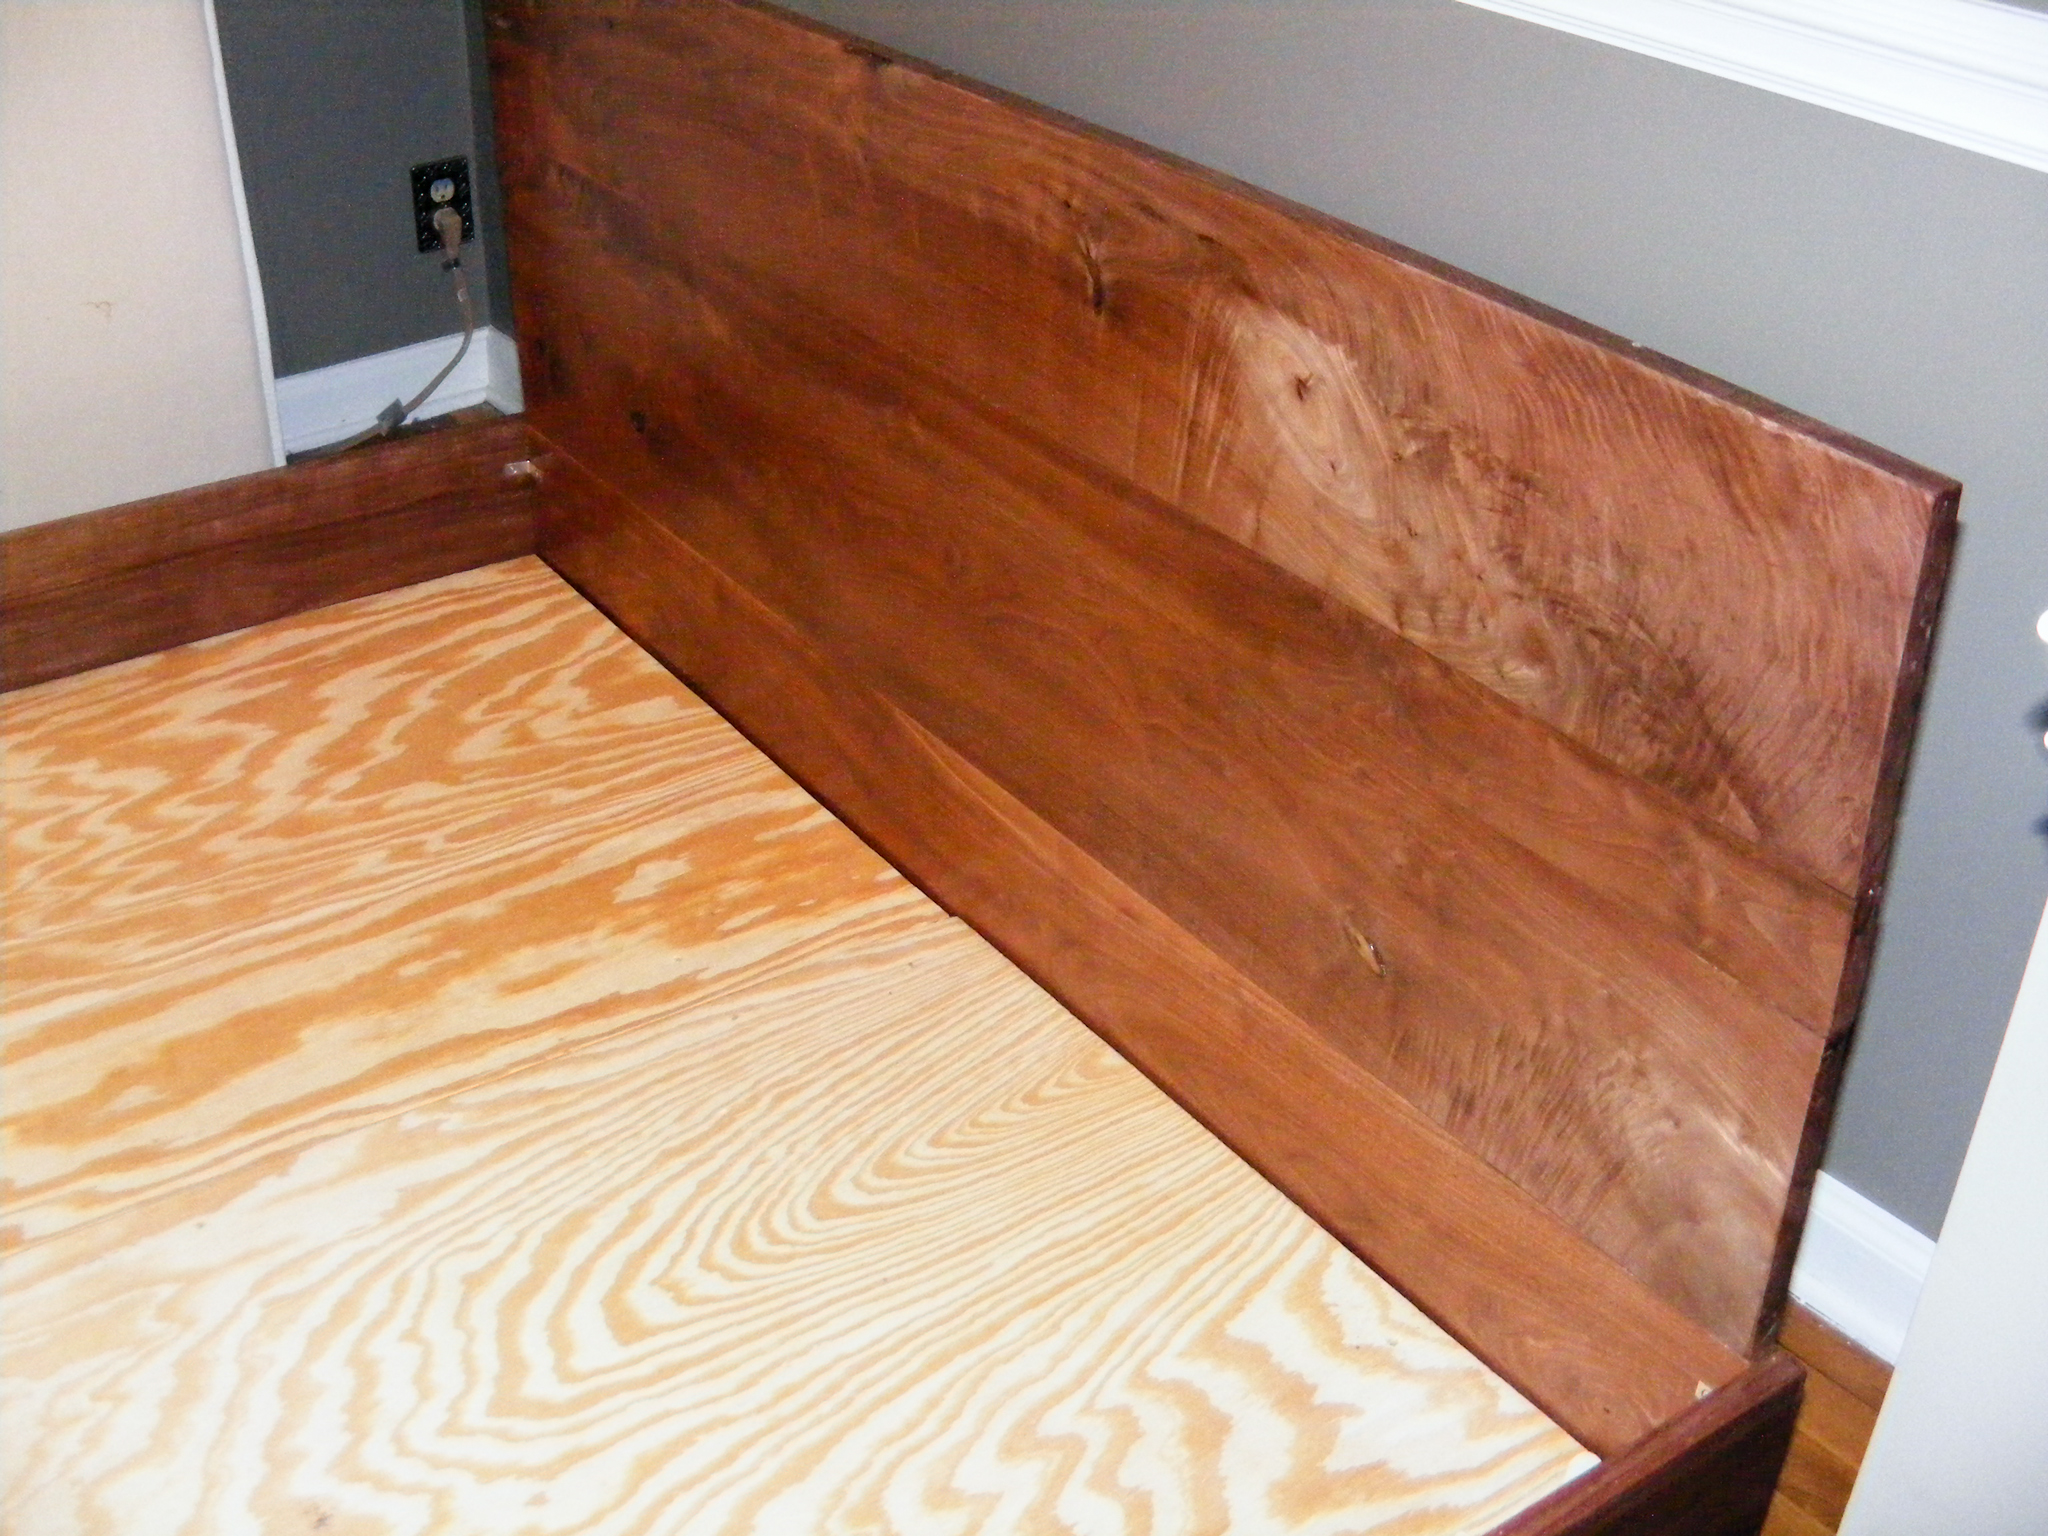 I'm quite happy with the headboard; it has lots of interesting grain that comes out with different angles/lighting.